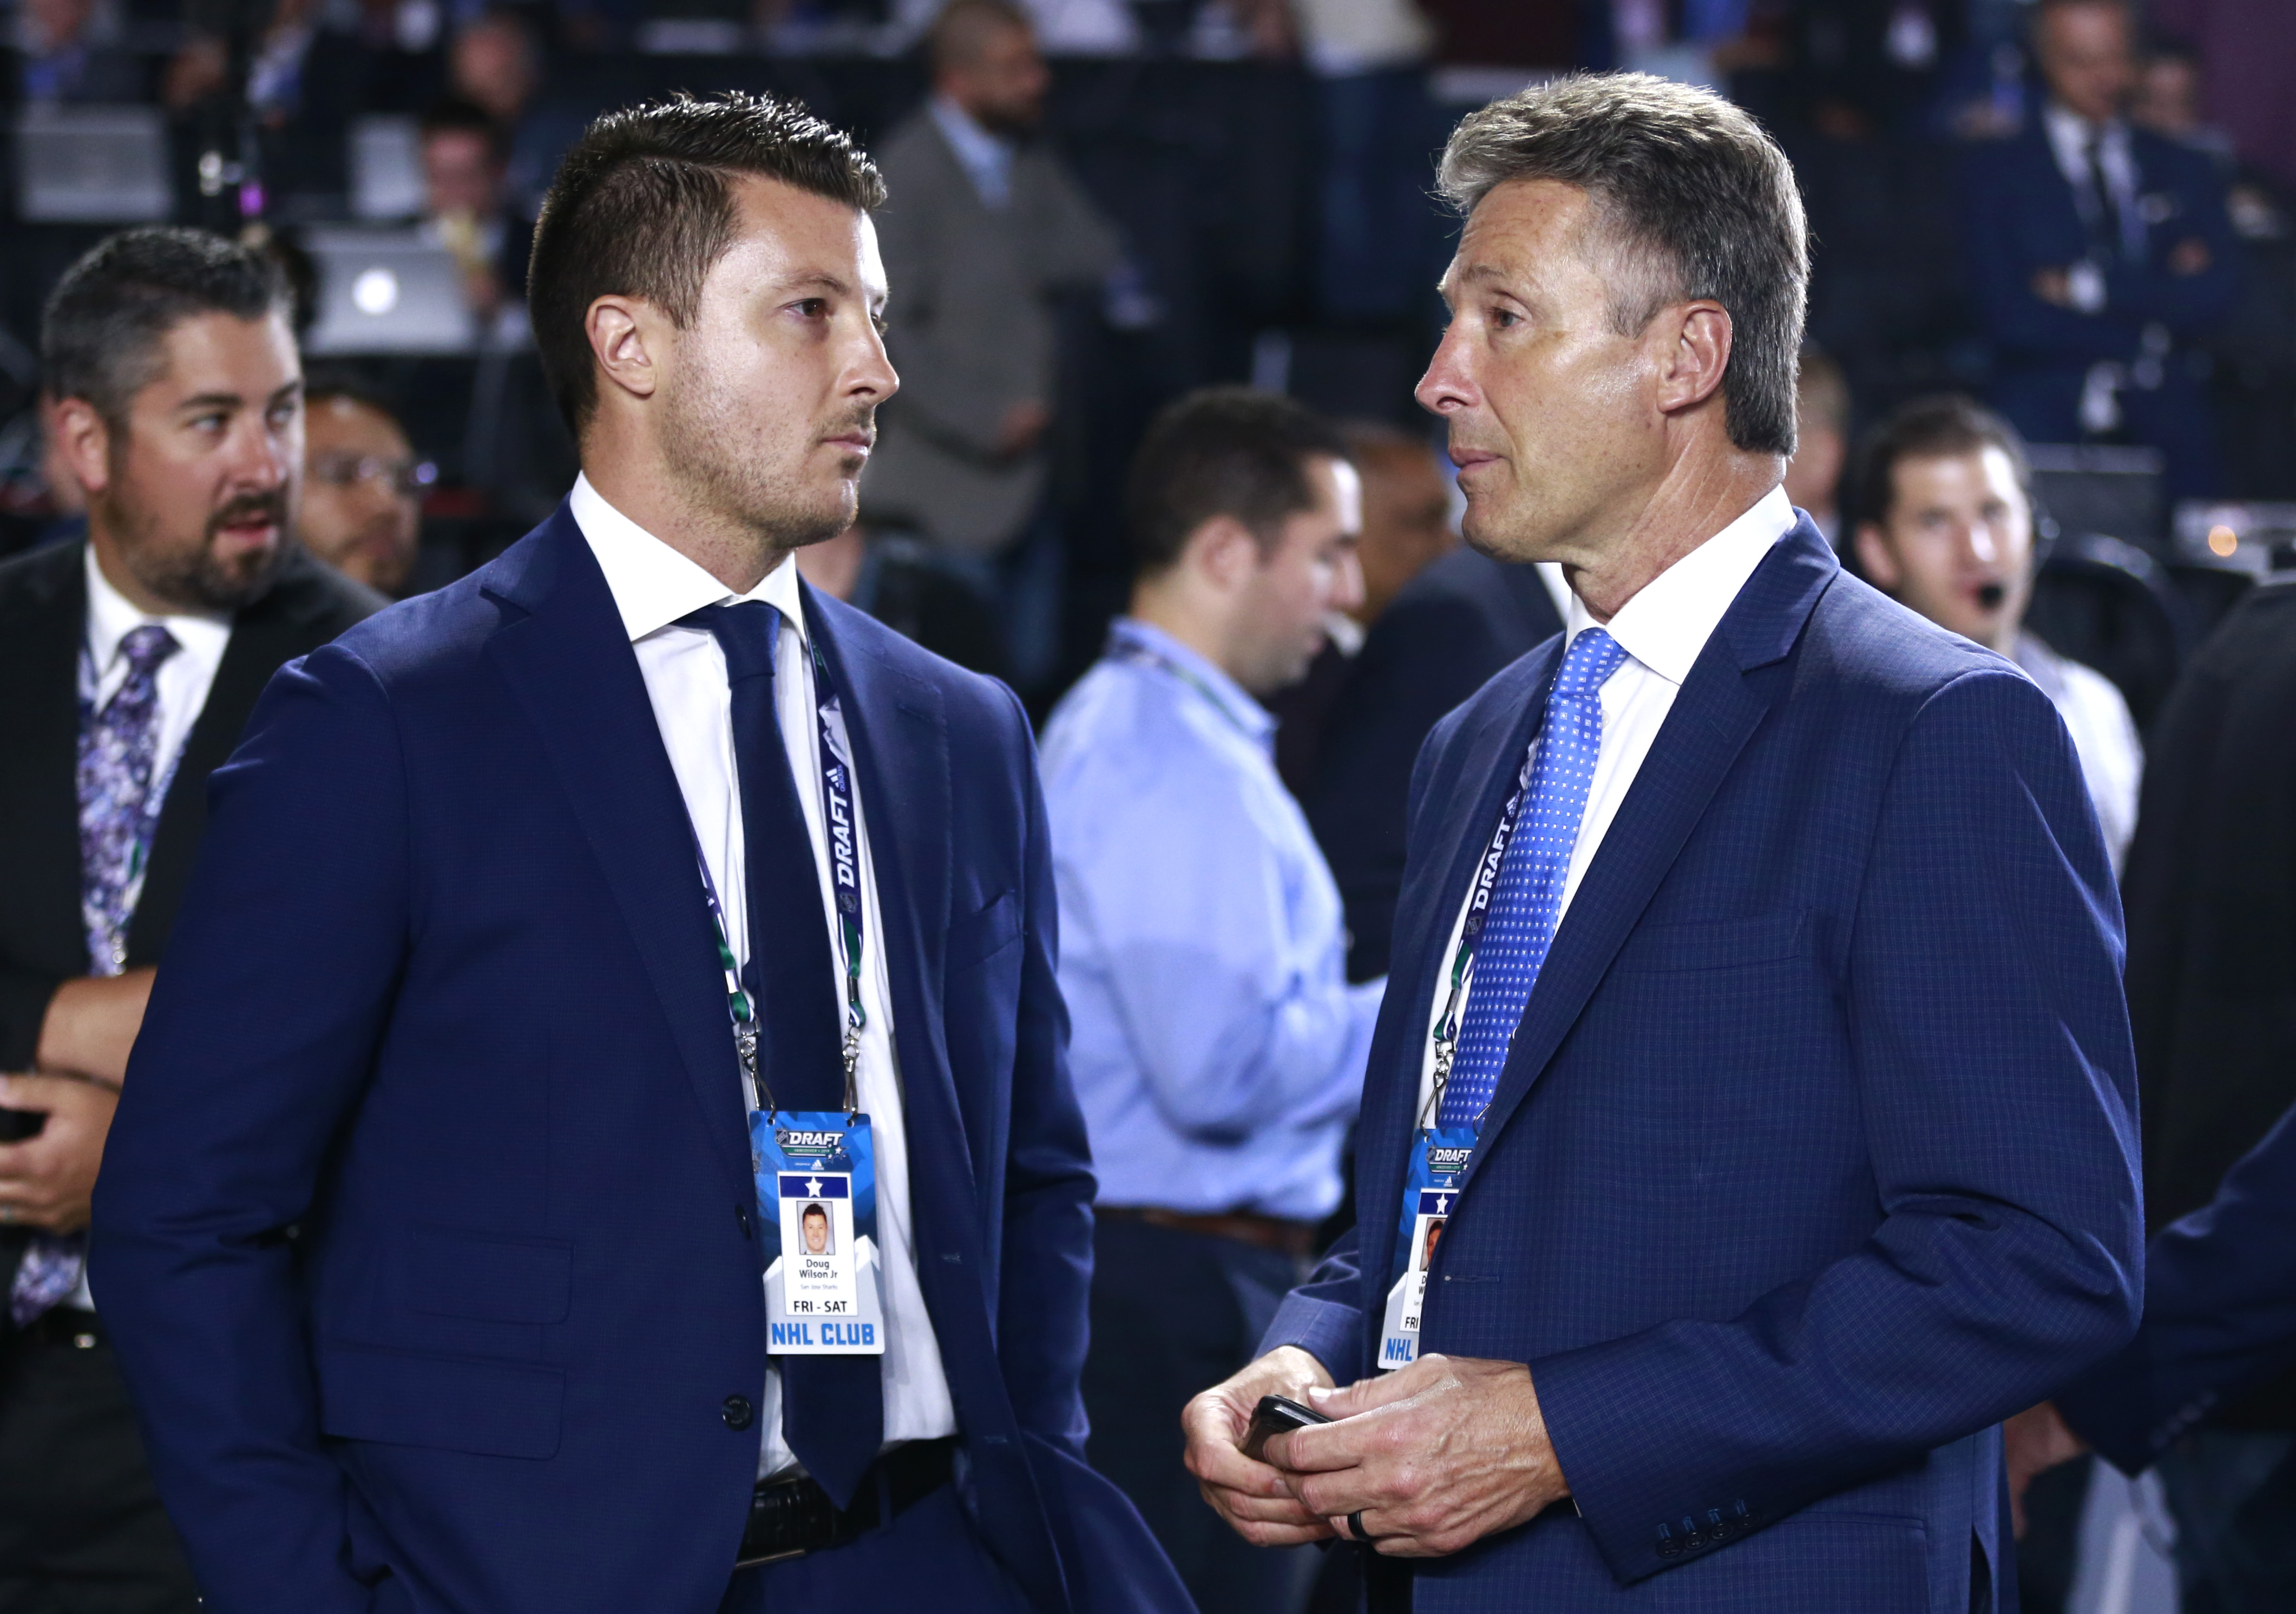 VANCOUVER, BRITISH COLUMBIA - JUNE 21: General Manager Doug Wilson of the San Jose Sharks (L) and Doug Wilson Jr. stand on the draft floor during the first round of the 2019 NHL Draft at Rogers Arena on June 21, 2019 in Vancouver, Canada.